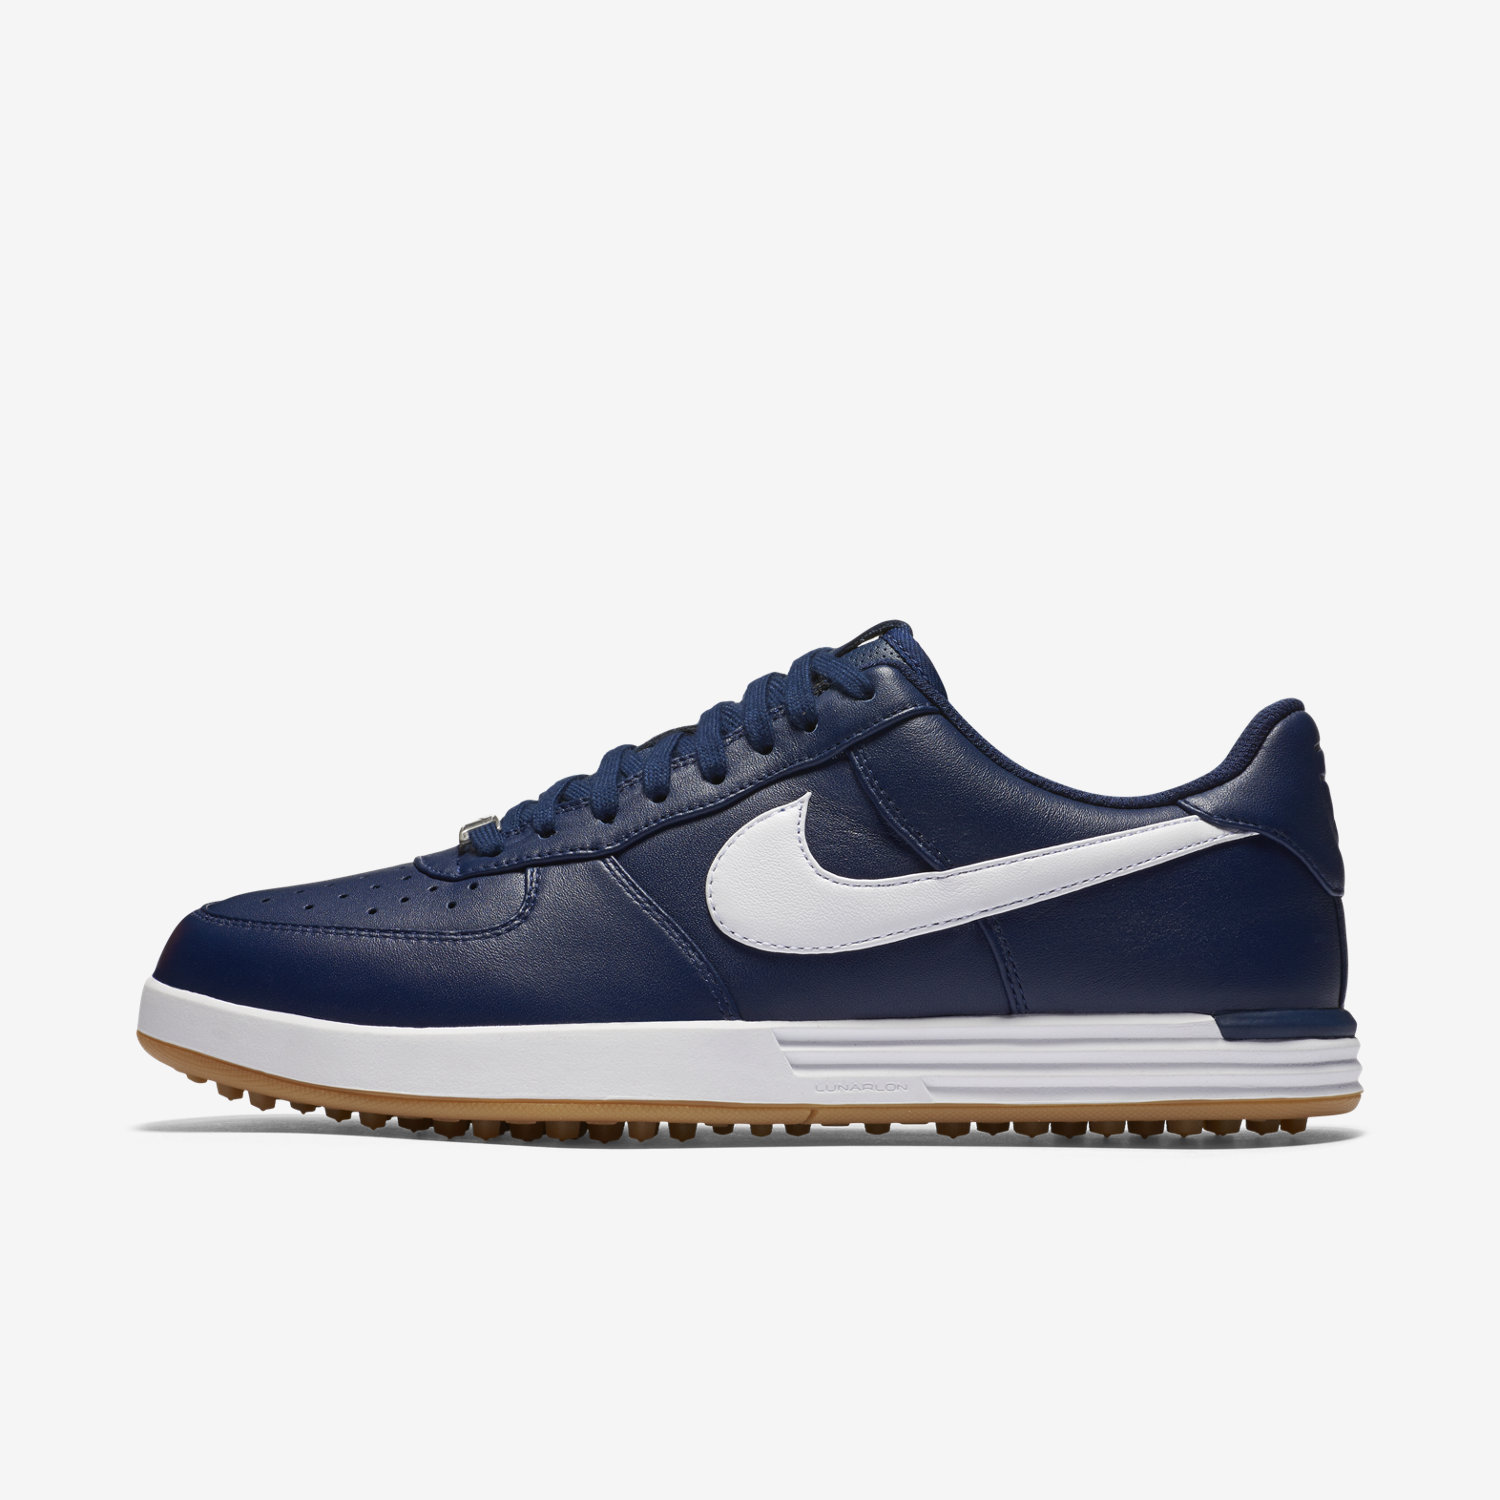 nike air force one lunar air force 1 style. Black Bedroom Furniture Sets. Home Design Ideas